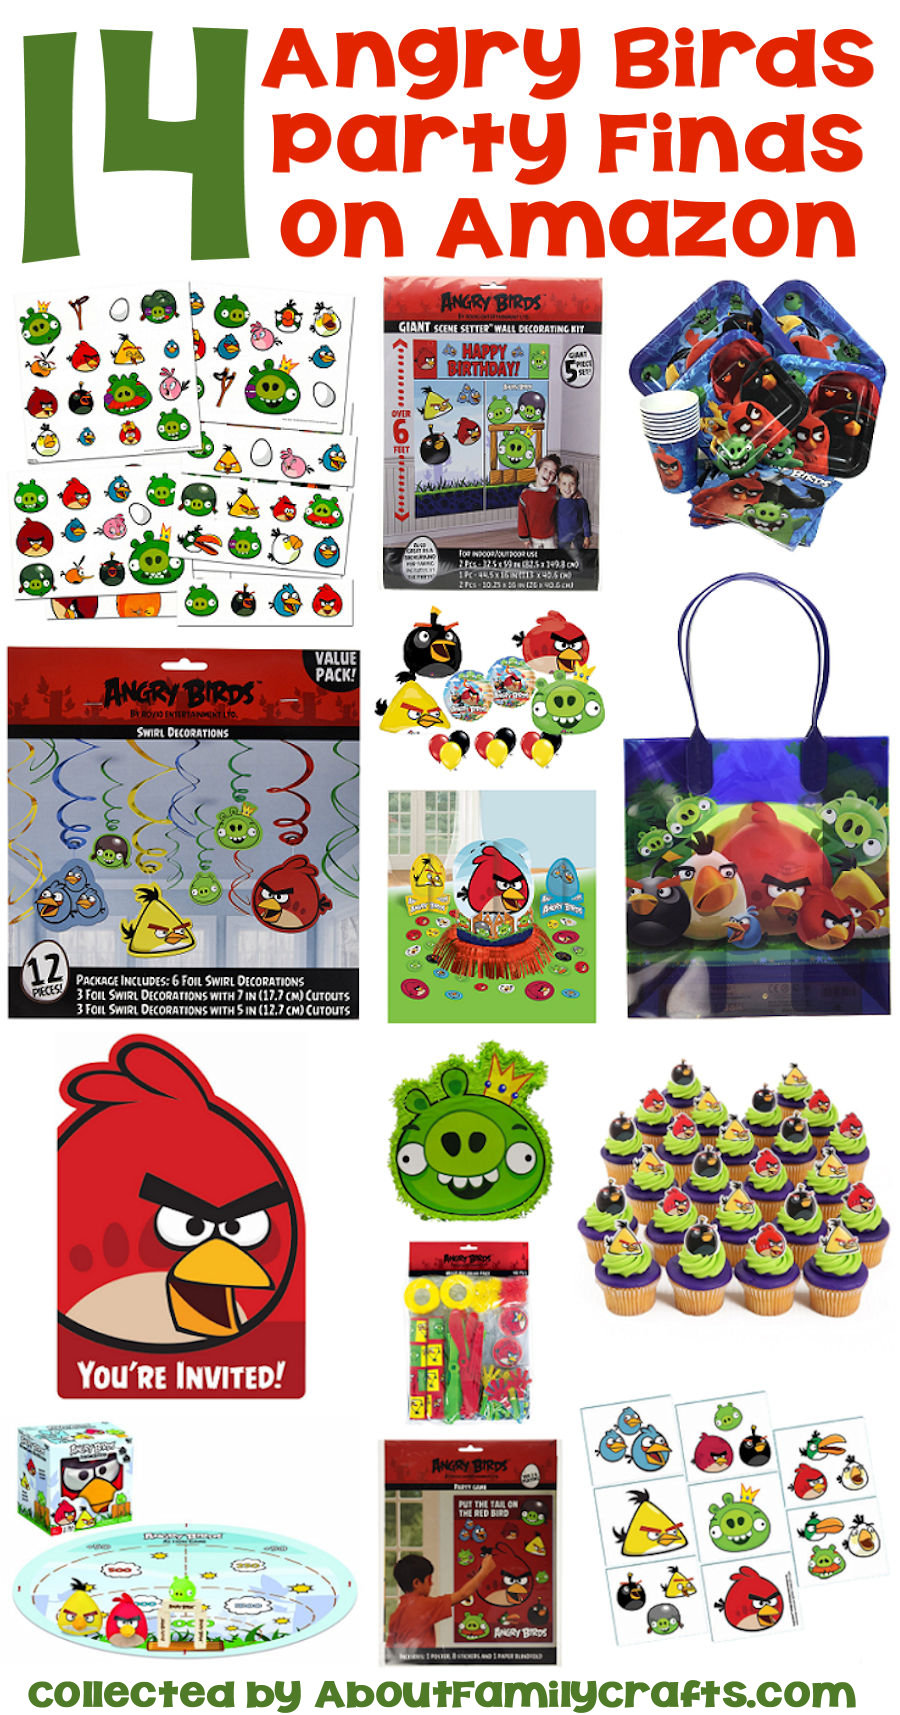 Amazing Angry Birds Party Finds on Amazon